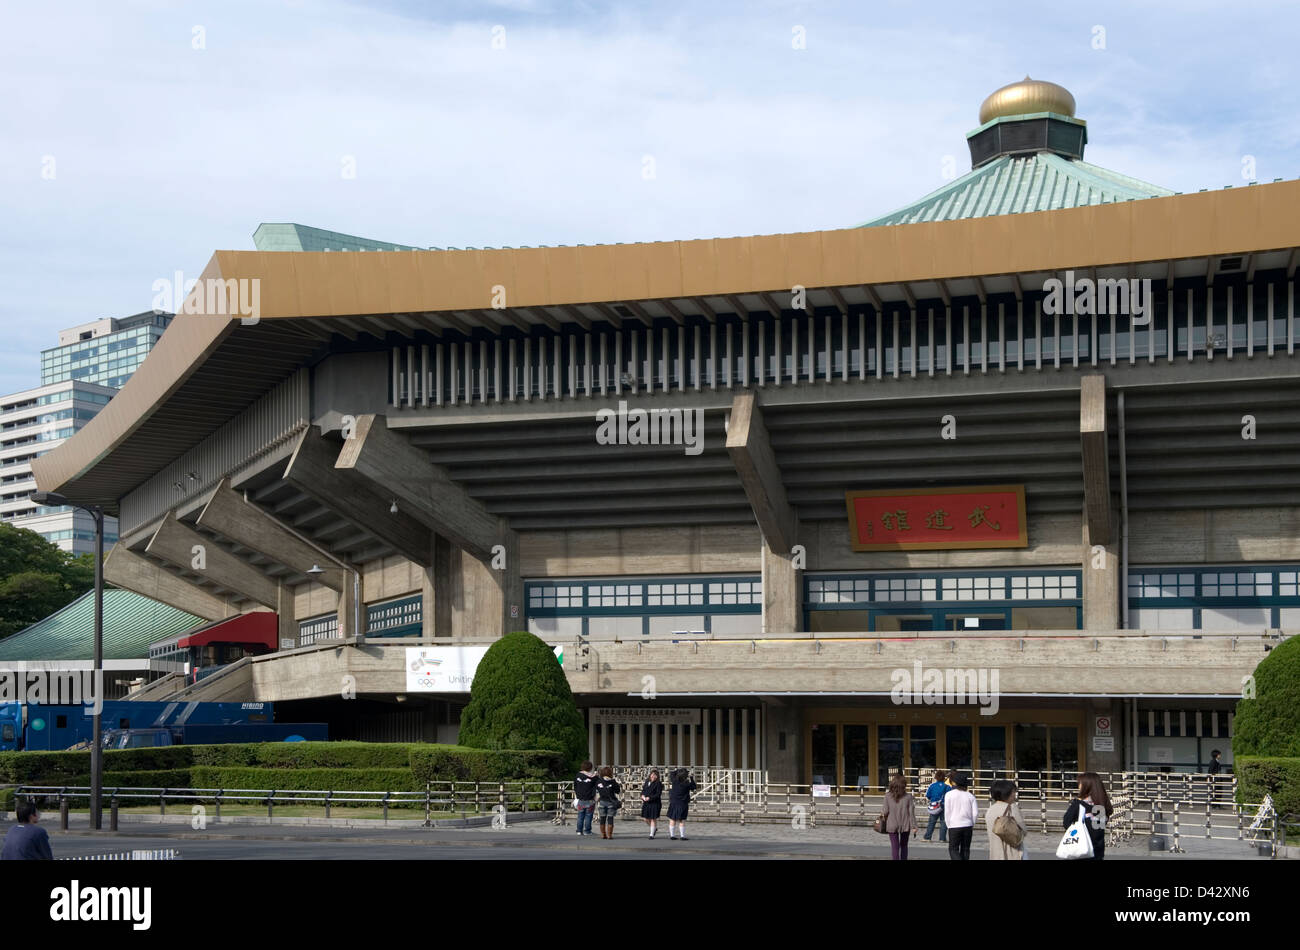 Nippon Budokan arena holds martial arts tournaments and concerts in central Tokyo. - Stock Image